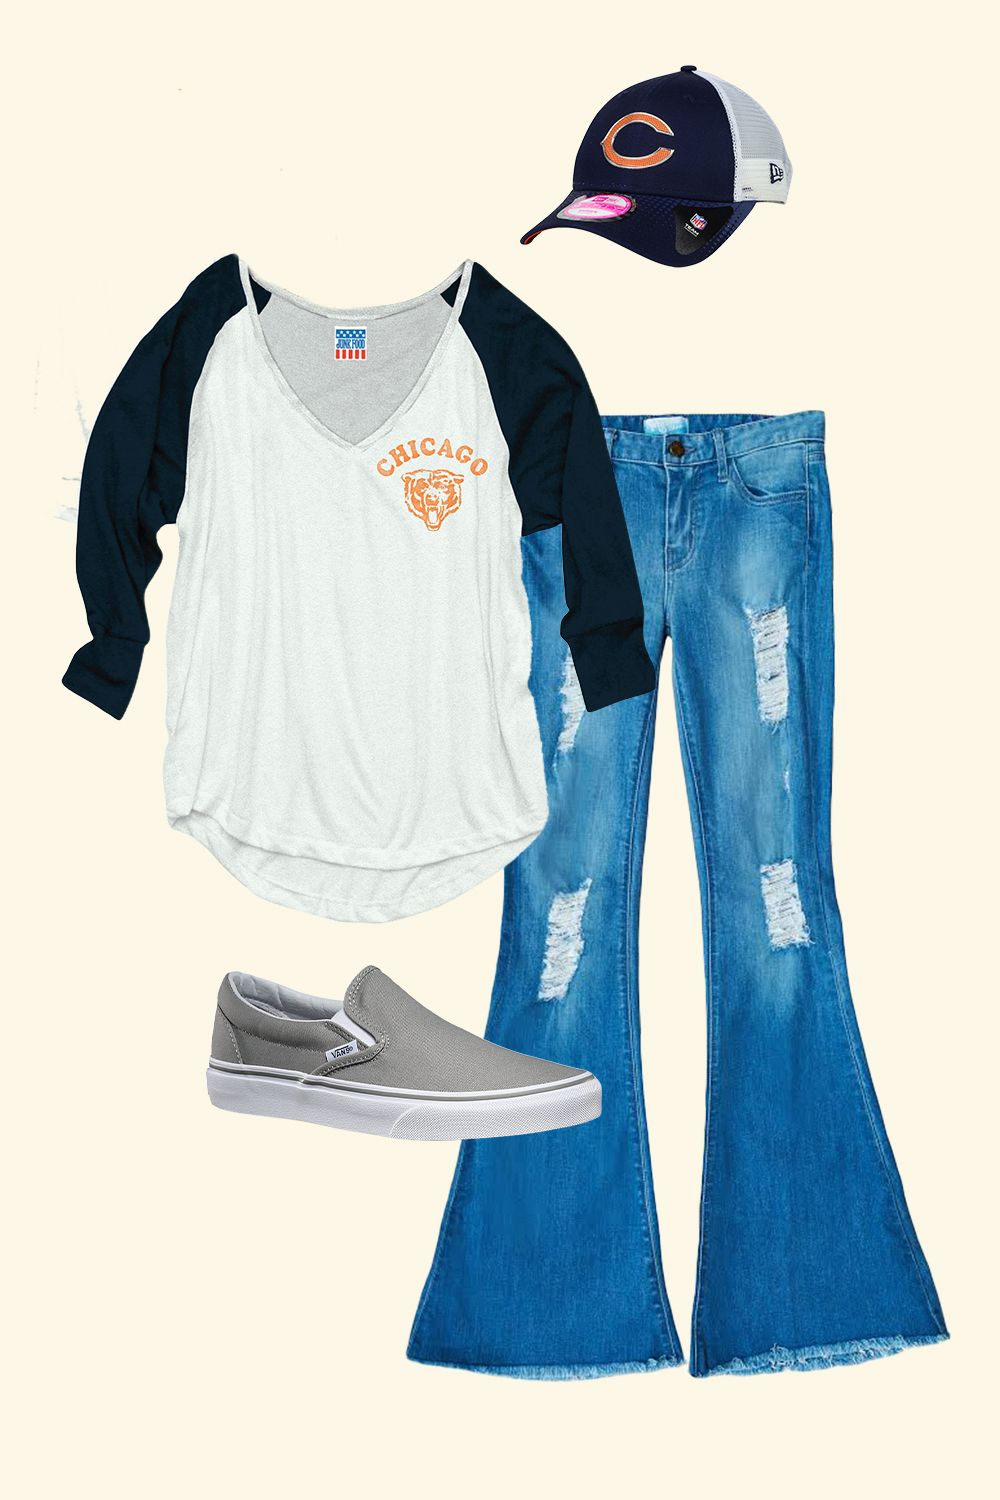 "<p>The T-shirt and cap say ""I'm a fan"" while the trendy denim in the flattering flare says ""I'm also cute AF.""</p><p><br></p><p><em data-redactor-tag=""em"" data-verified=""redactor"">Phoenix Flare, $136, <a href=""http://www.showmeyourmumu.com/shop/denim/phoenix-flare-drizzle"" target=""_blank"">showmeyourmumu.com</a>; Junk Food Bears Tee, $45, <a href=""http://www.nflshop.com/Chicago_Bears_Women/Womens_Chicago_Bears_Junk_Food_White_Victory_Tri-Blend_V-Neck_Three-Quarter_Sleeve_T-Shirt"" target=""_blank"">nflshop.com</a>; Vans Slip-Ons in Wild Dove, $50, <a href=""http://www.vans.com/shop/slip-on-wild-dove-true-white"" target=""_blank"">vans.com</a>; New Era Bears Cap, $24, </em><a href=""http://www.nflshop.com/Chicago_Bears_Women_Hats/Womens_Chicago_Bears_New_Era_Navy_Spirited_9TWENTY_Adjustable_Hat"" target=""_blank""><em data-redactor-tag=""em"" data-verified=""redactor"">nflshop.com</em></a></p>"